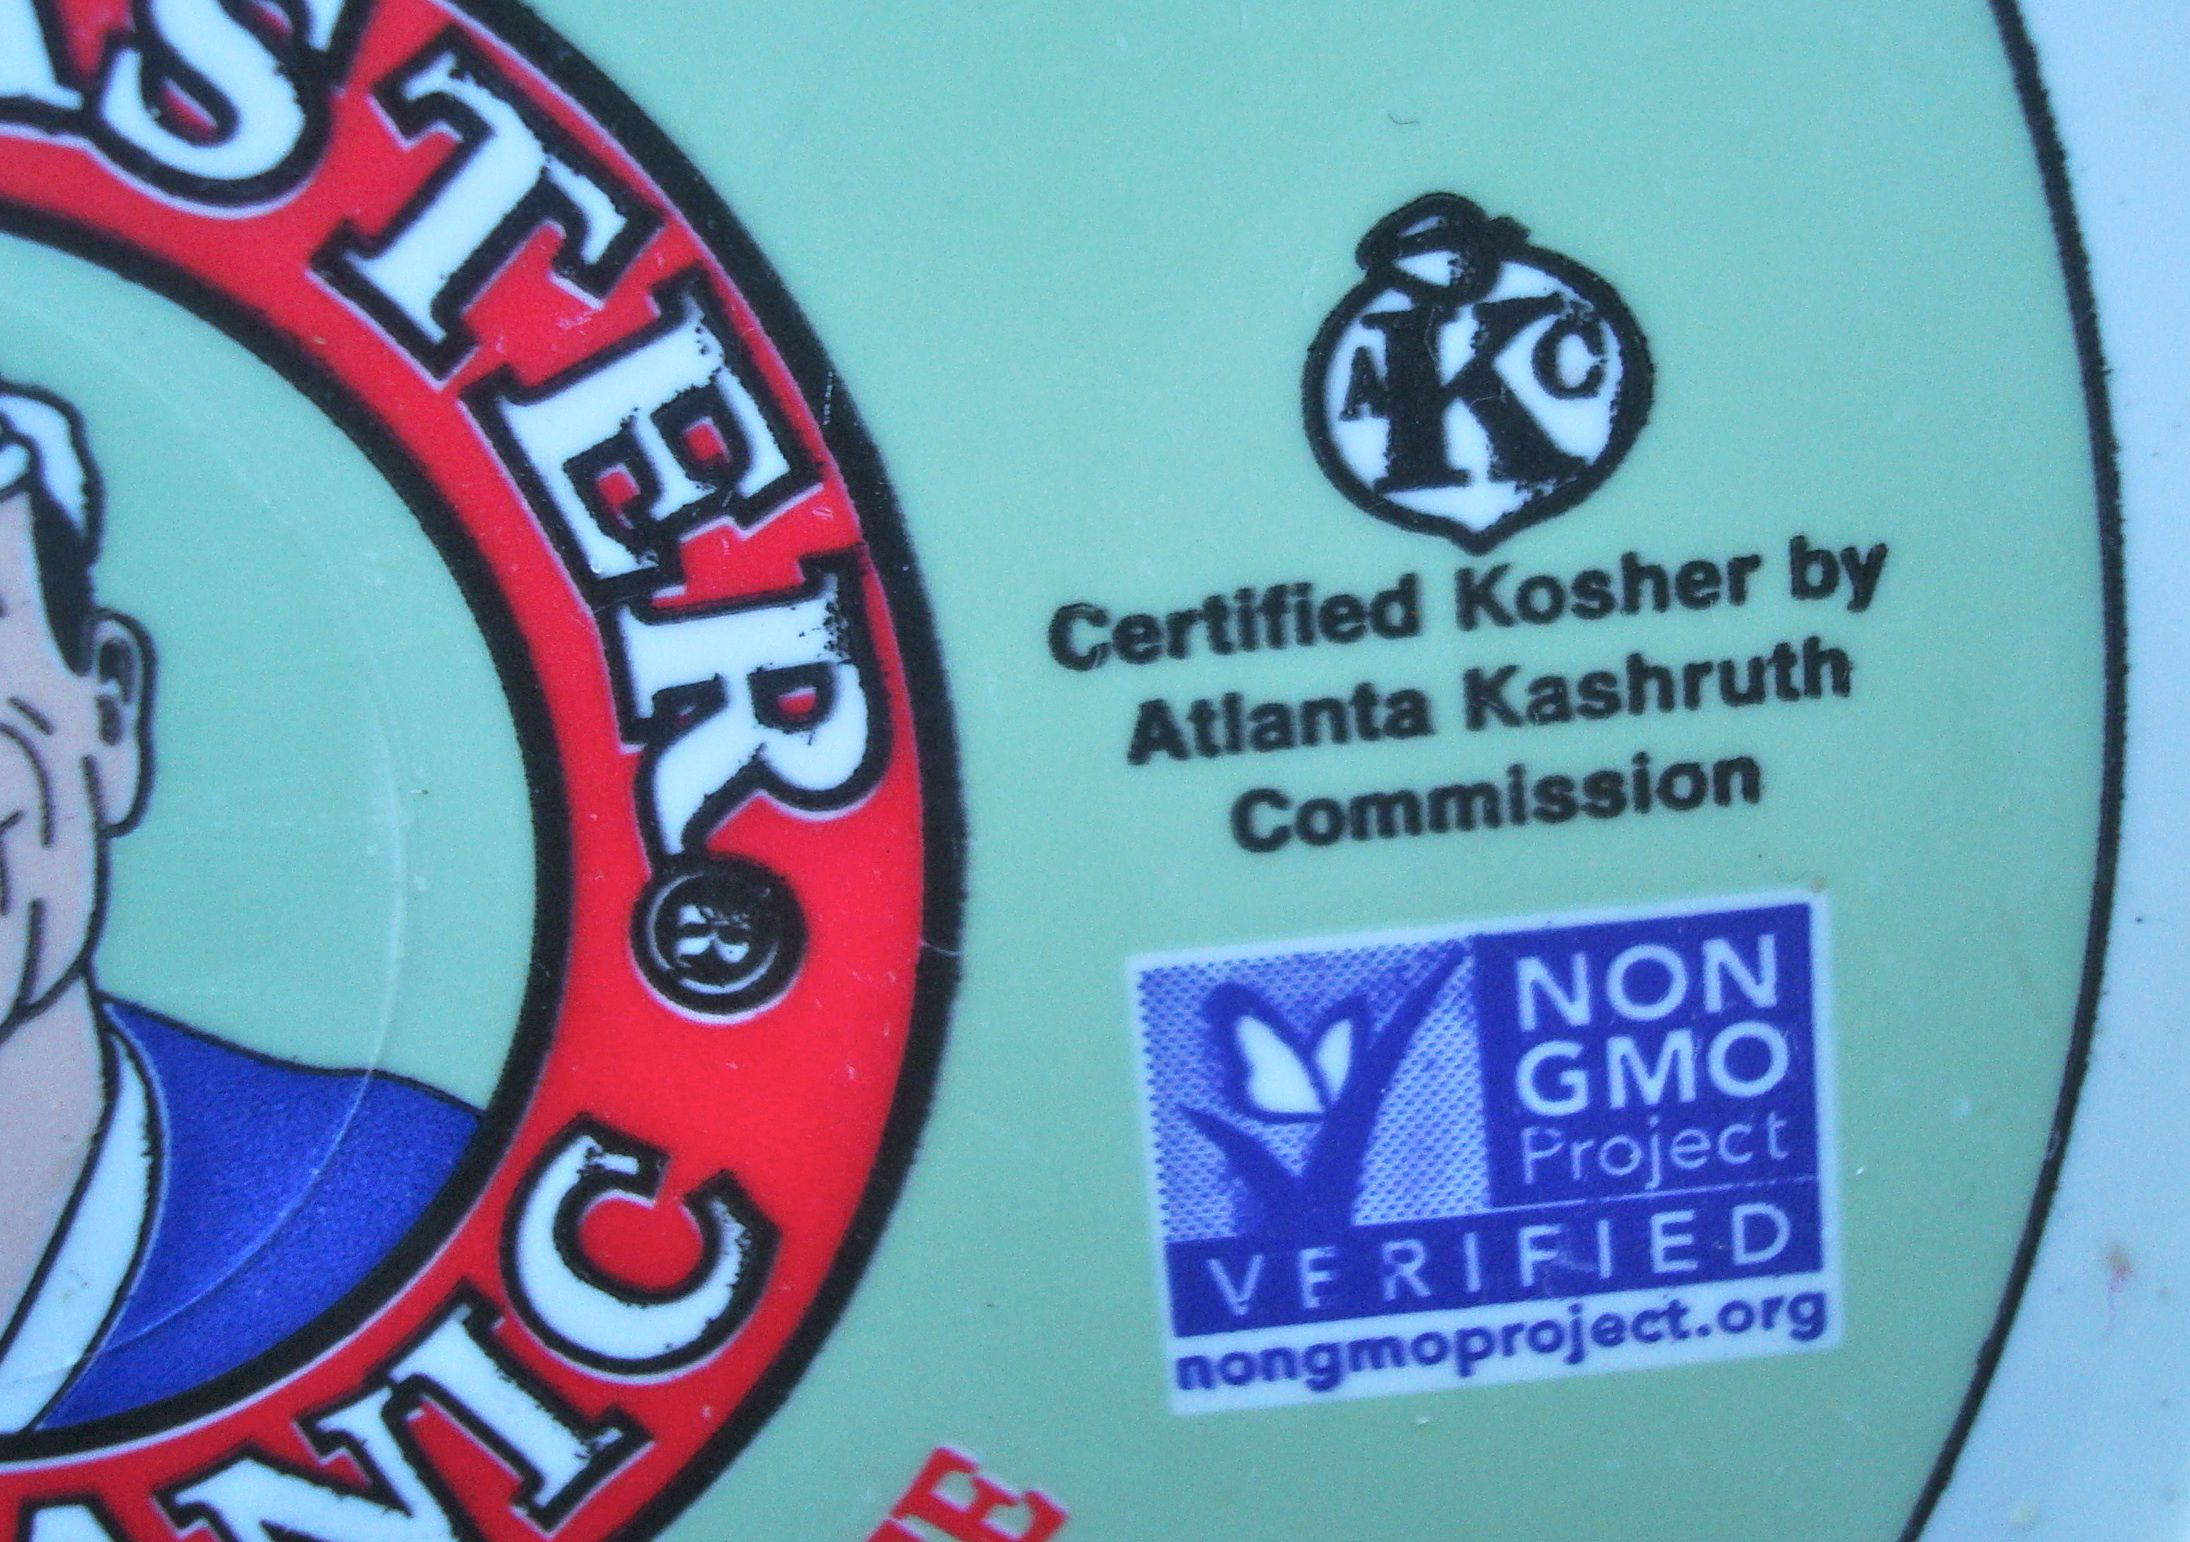 A guide to kosher symbols and certifications biocorpaavc